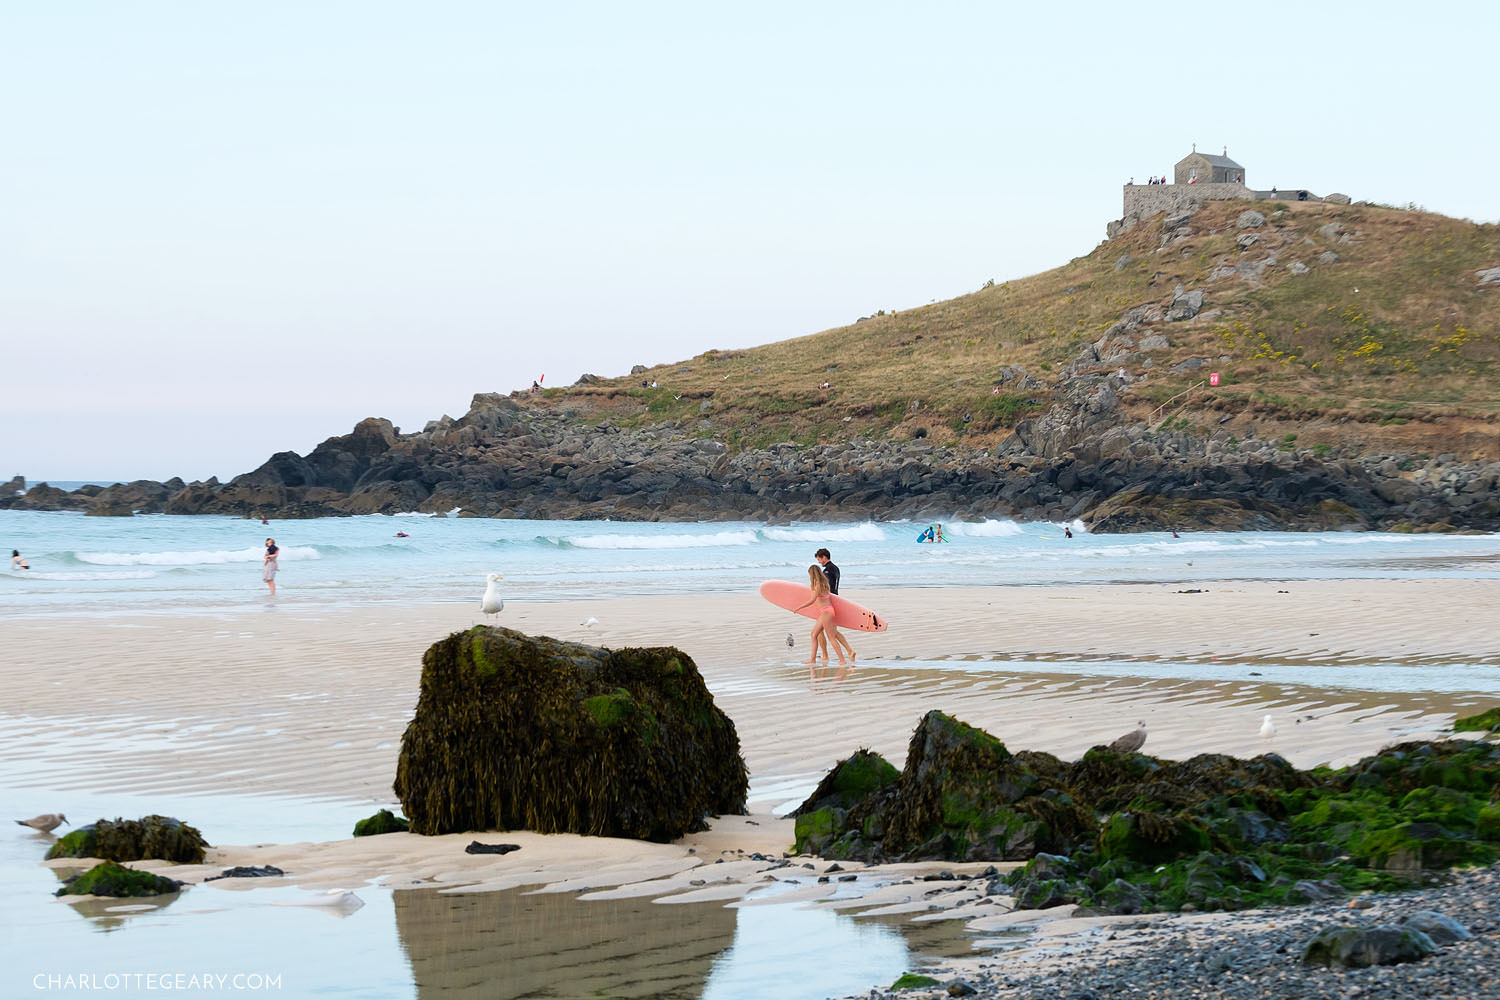 Surfers on Porthmeor Beach in St. Ives, Cornwall, England